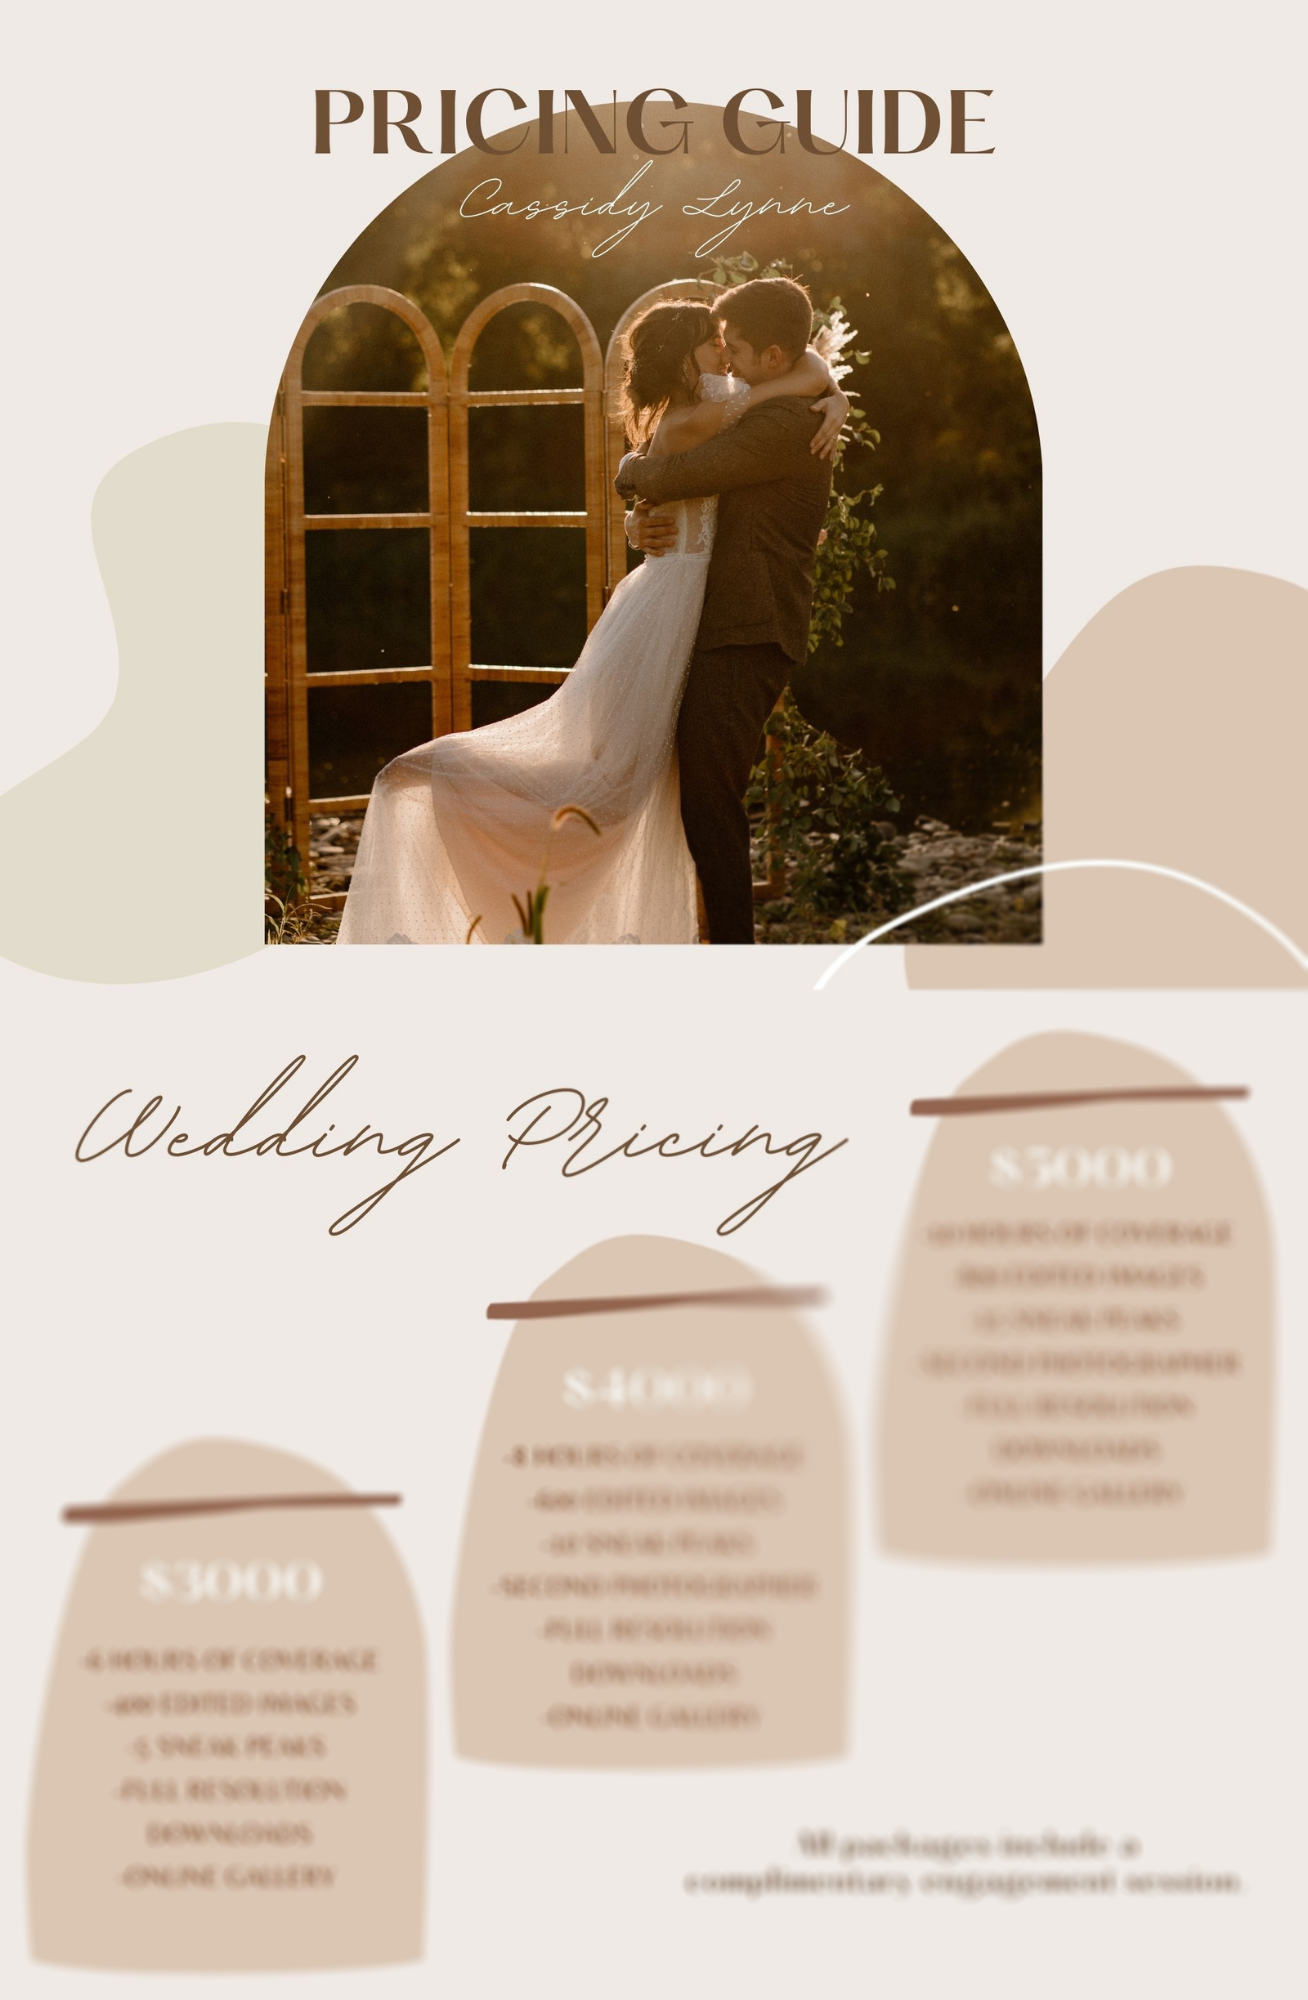 Pricing Guide Template for Photographers